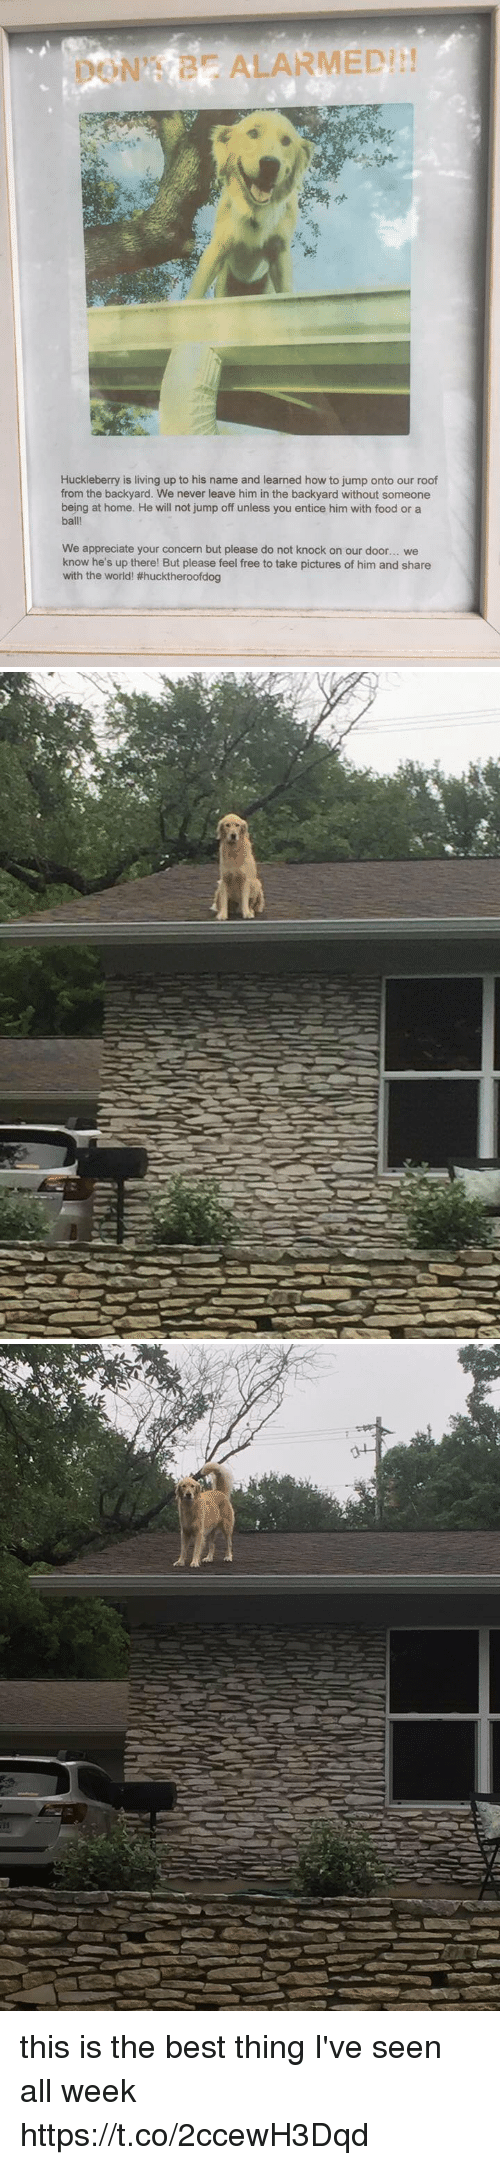 jumps off: ALARMED  Huckleberry is living up to his name and learned how to jump onto our roof  from the backyard. We never leave him in the backyard without someone  being at home. He will not jump off unless you entice him with food or a  ball!  We appreciate your concern but please do not knock on our door... we  know he's up there! But please feel free to take pictures of him and share  with the world! #hucktheroofdog   み this is the best thing I've seen all week https://t.co/2ccewH3Dqd